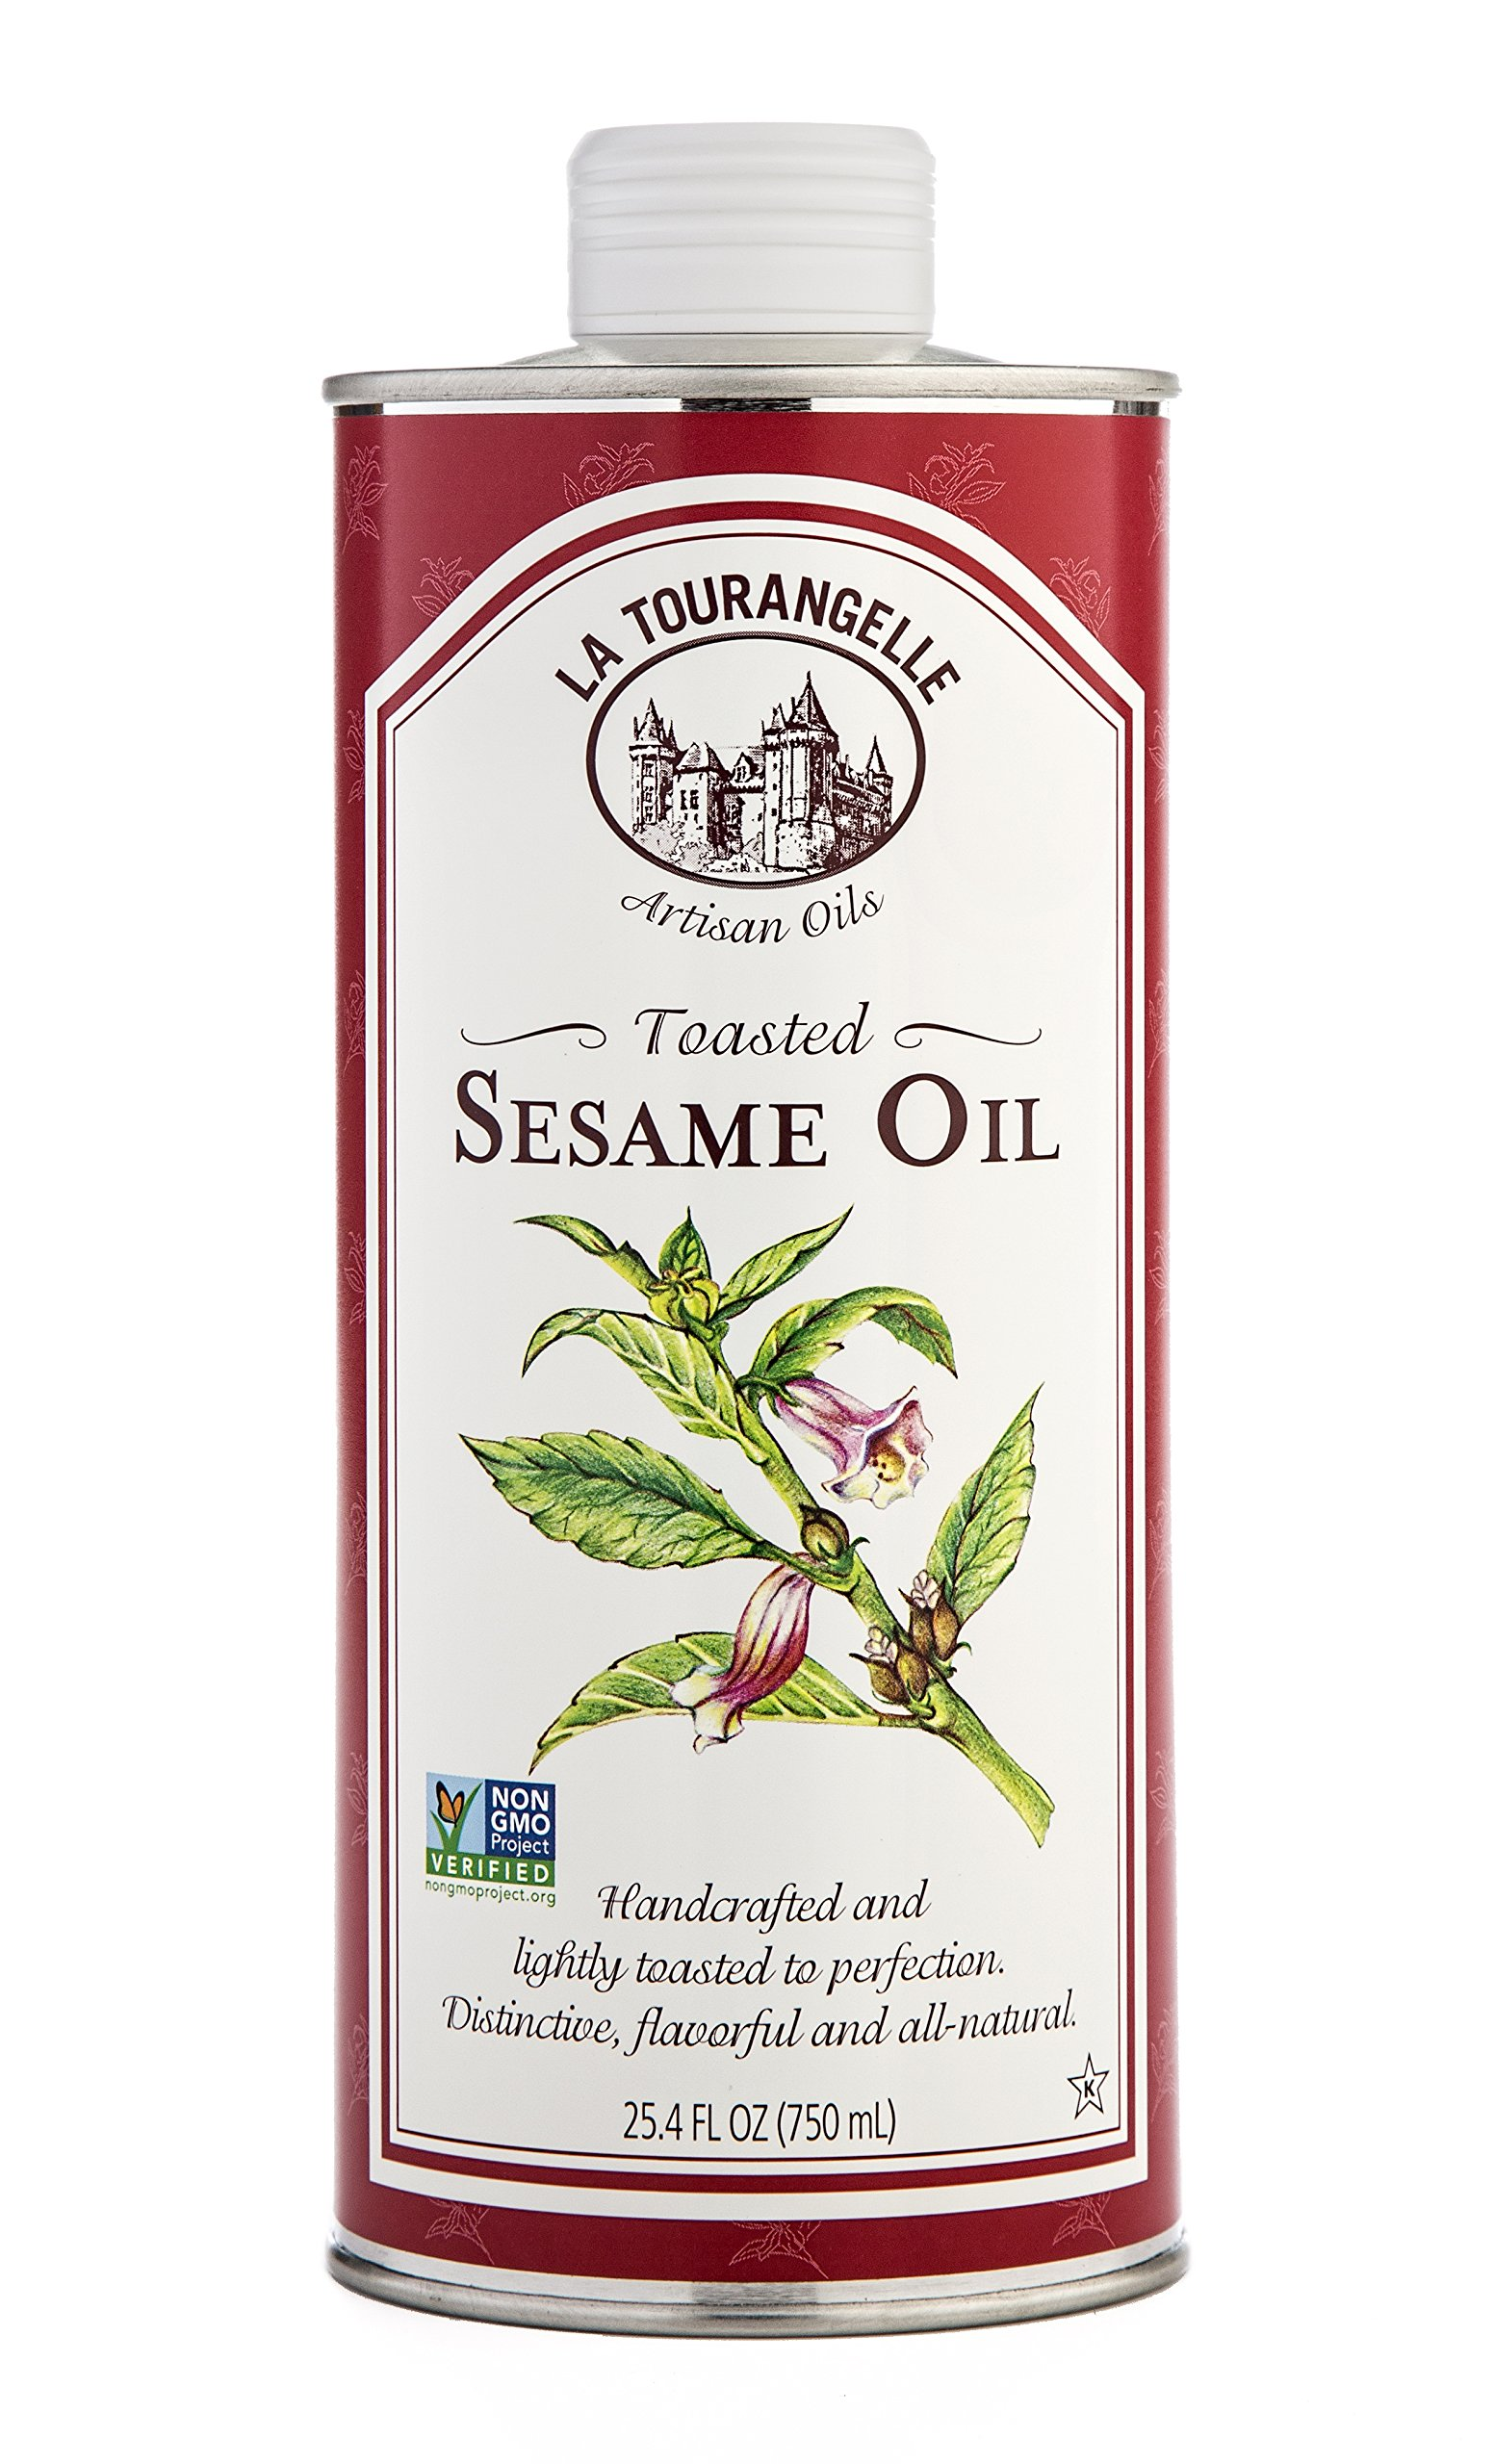 La Tourangelle Toasted Sesame Oil 25.4 Fl. Oz.,  All-Natural, Artisanal, Great for Stir Fry, Noodles, or as a Marinade